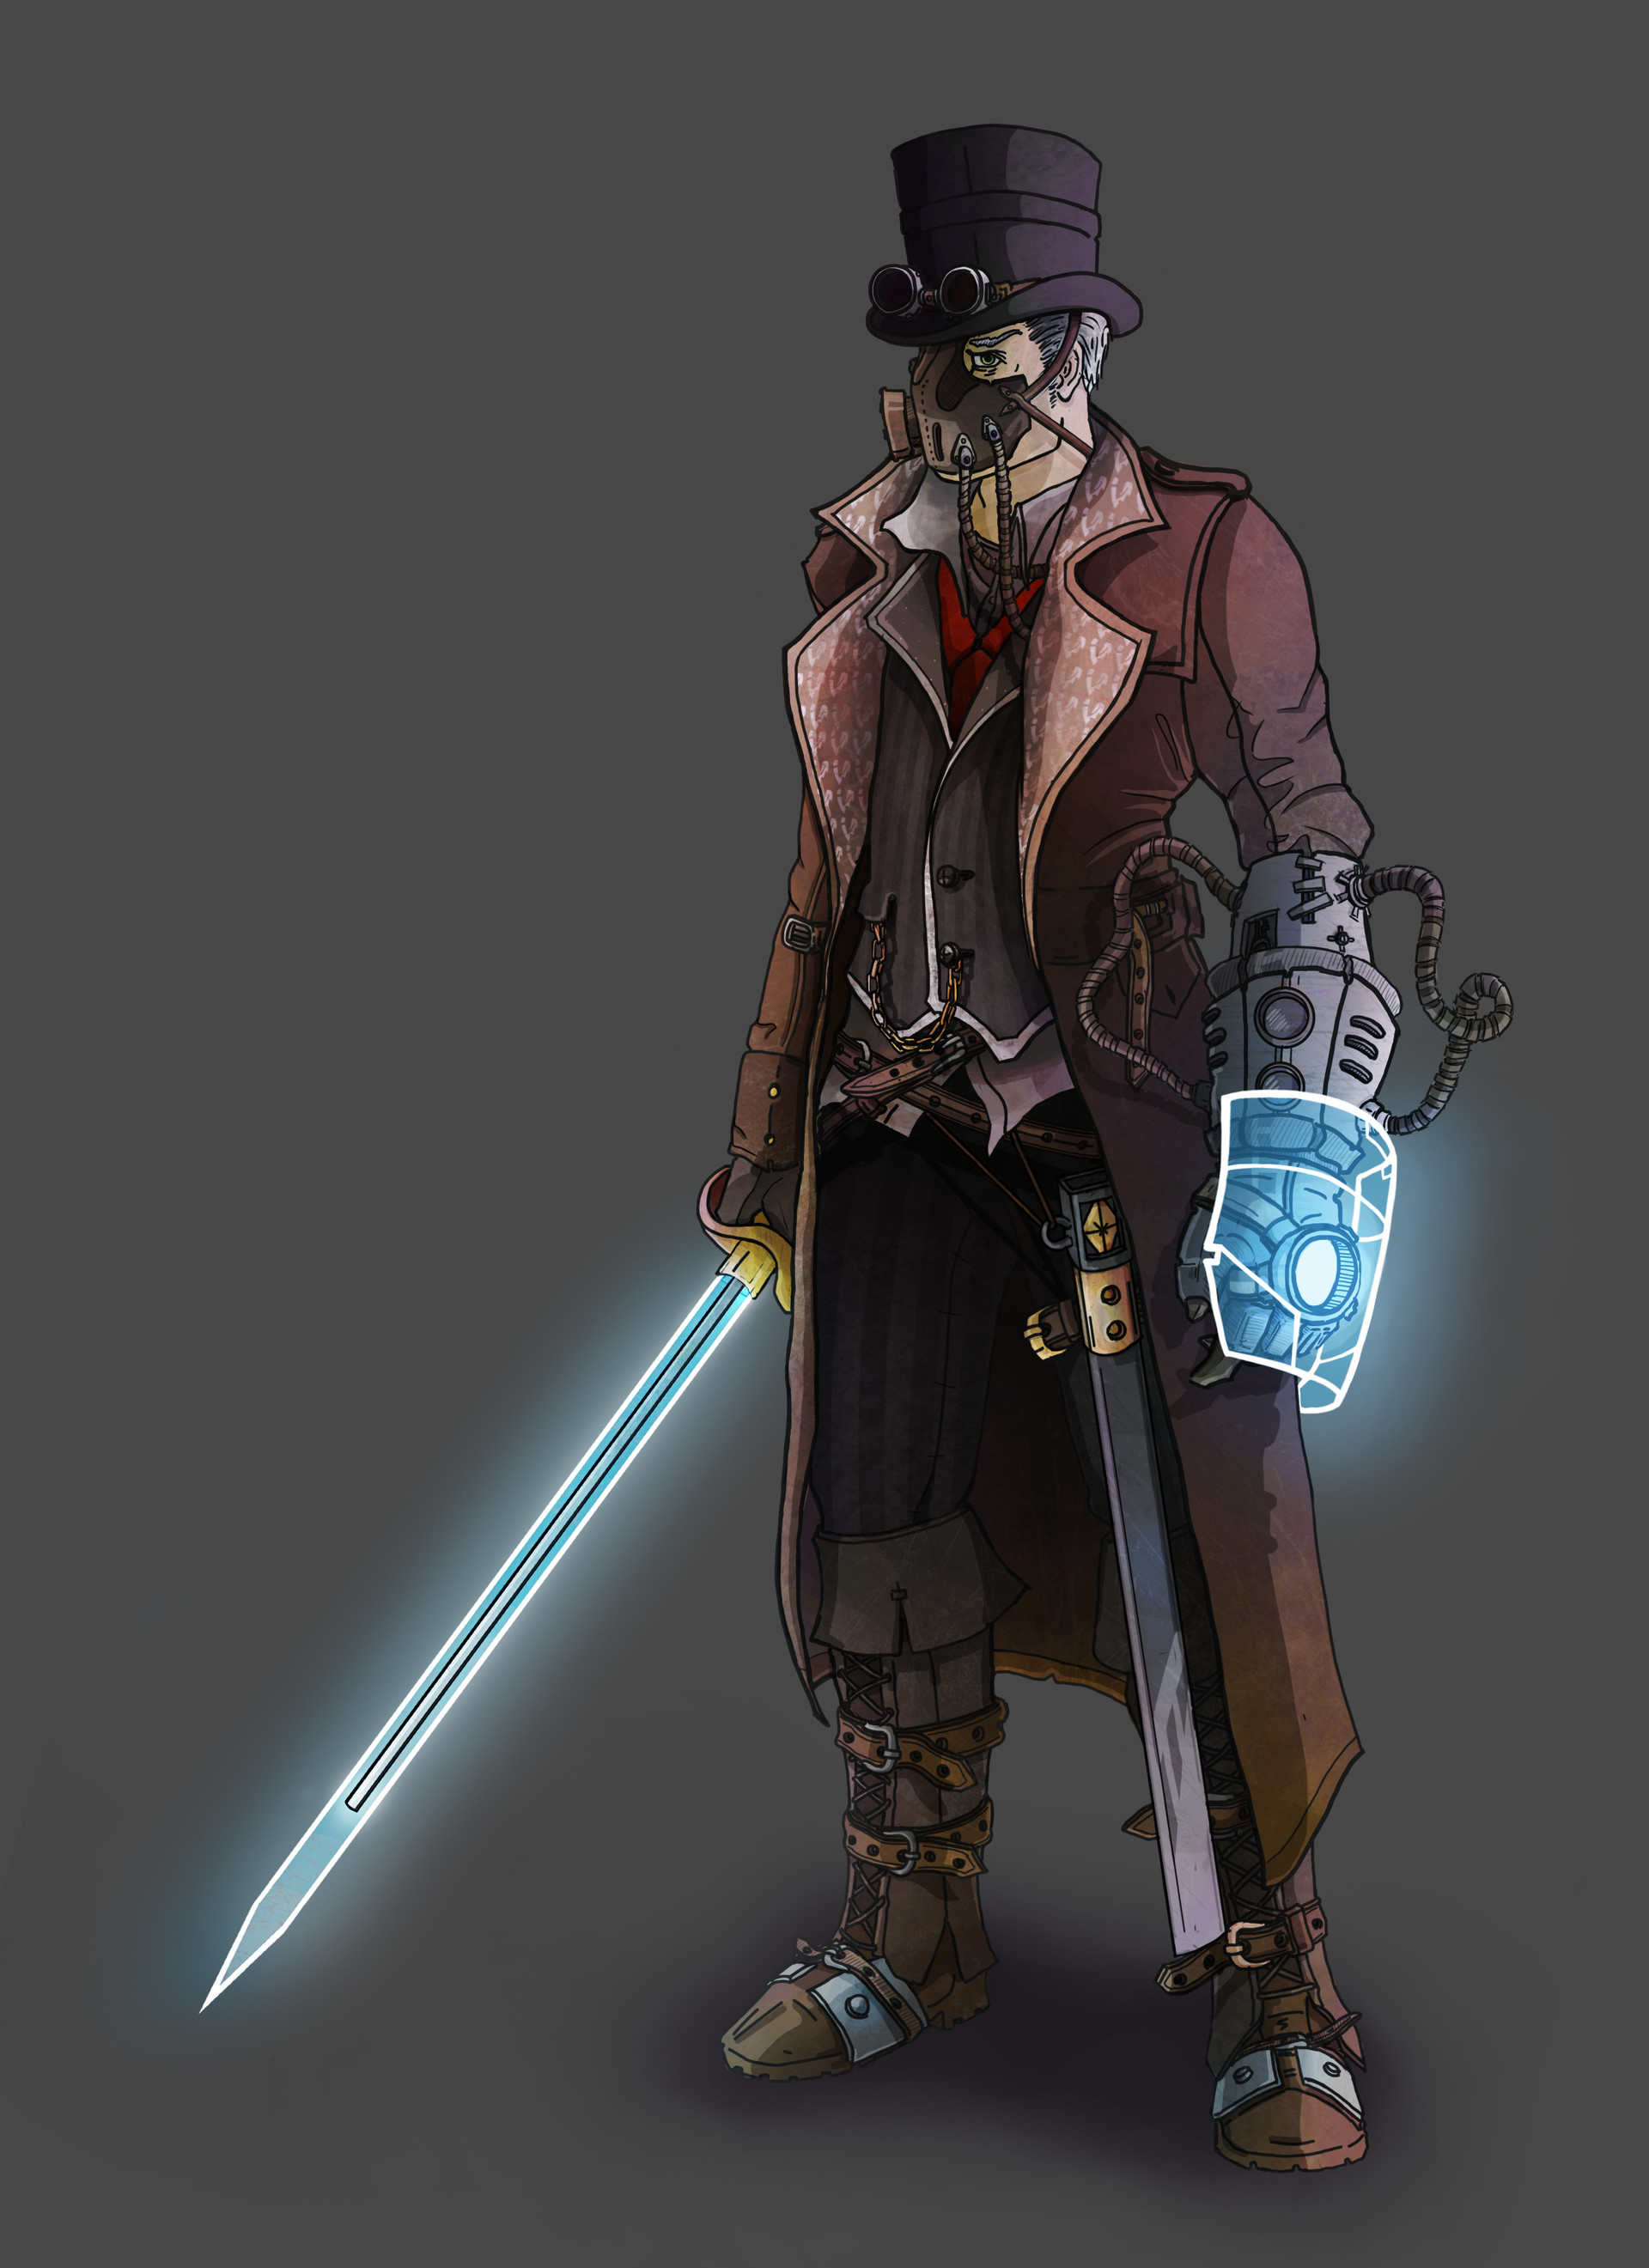 3d Character Design Course : Balint bartis steampunk character design with cyborg